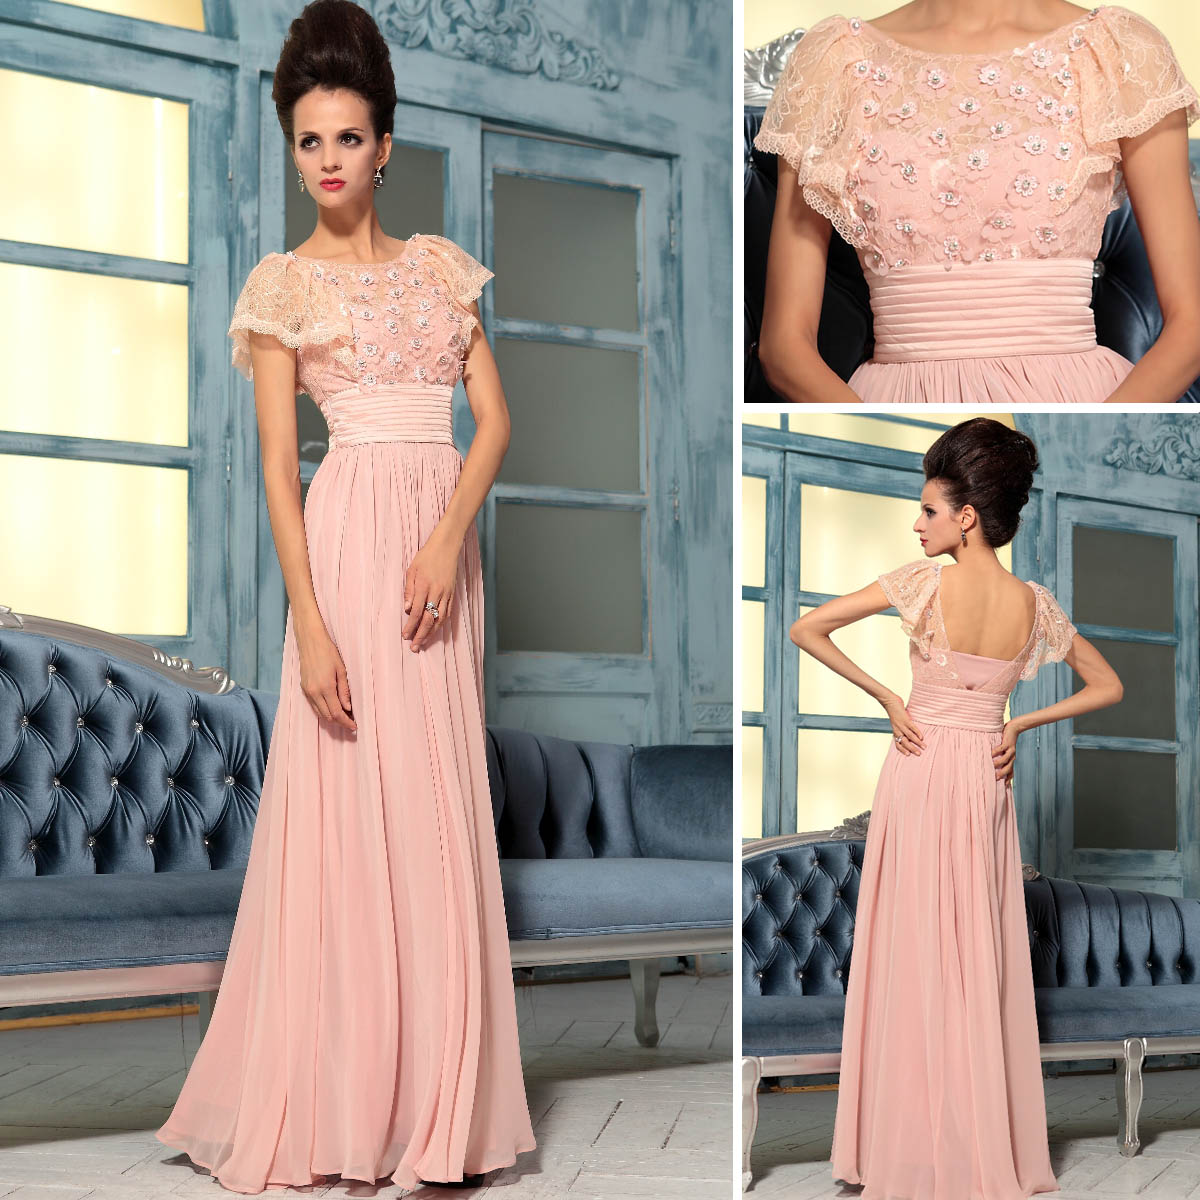 37670 bag evening dress 2013 pink lace evening dress ...